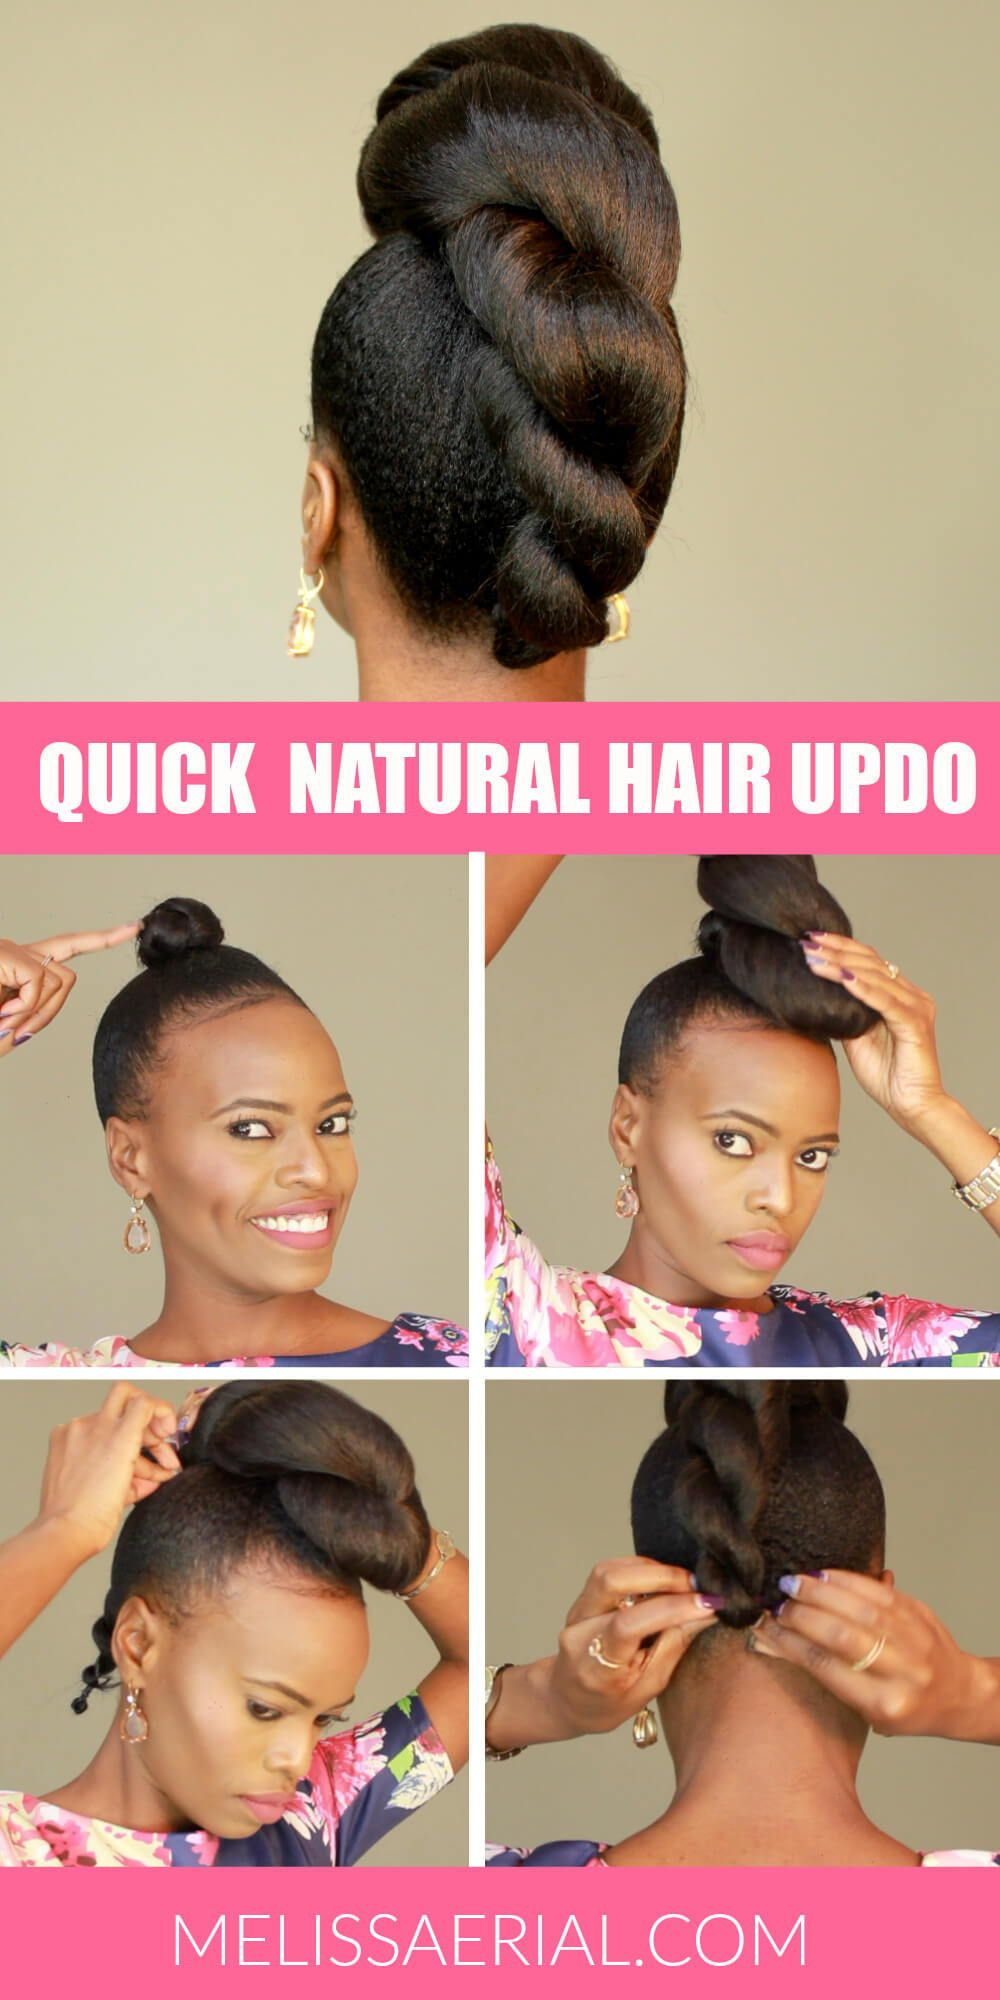 Get Details On How To Create A Quick Natural Hair Updo Natural Hair Updo Natural Hair Styles Easy Updos For Medium Length Hair